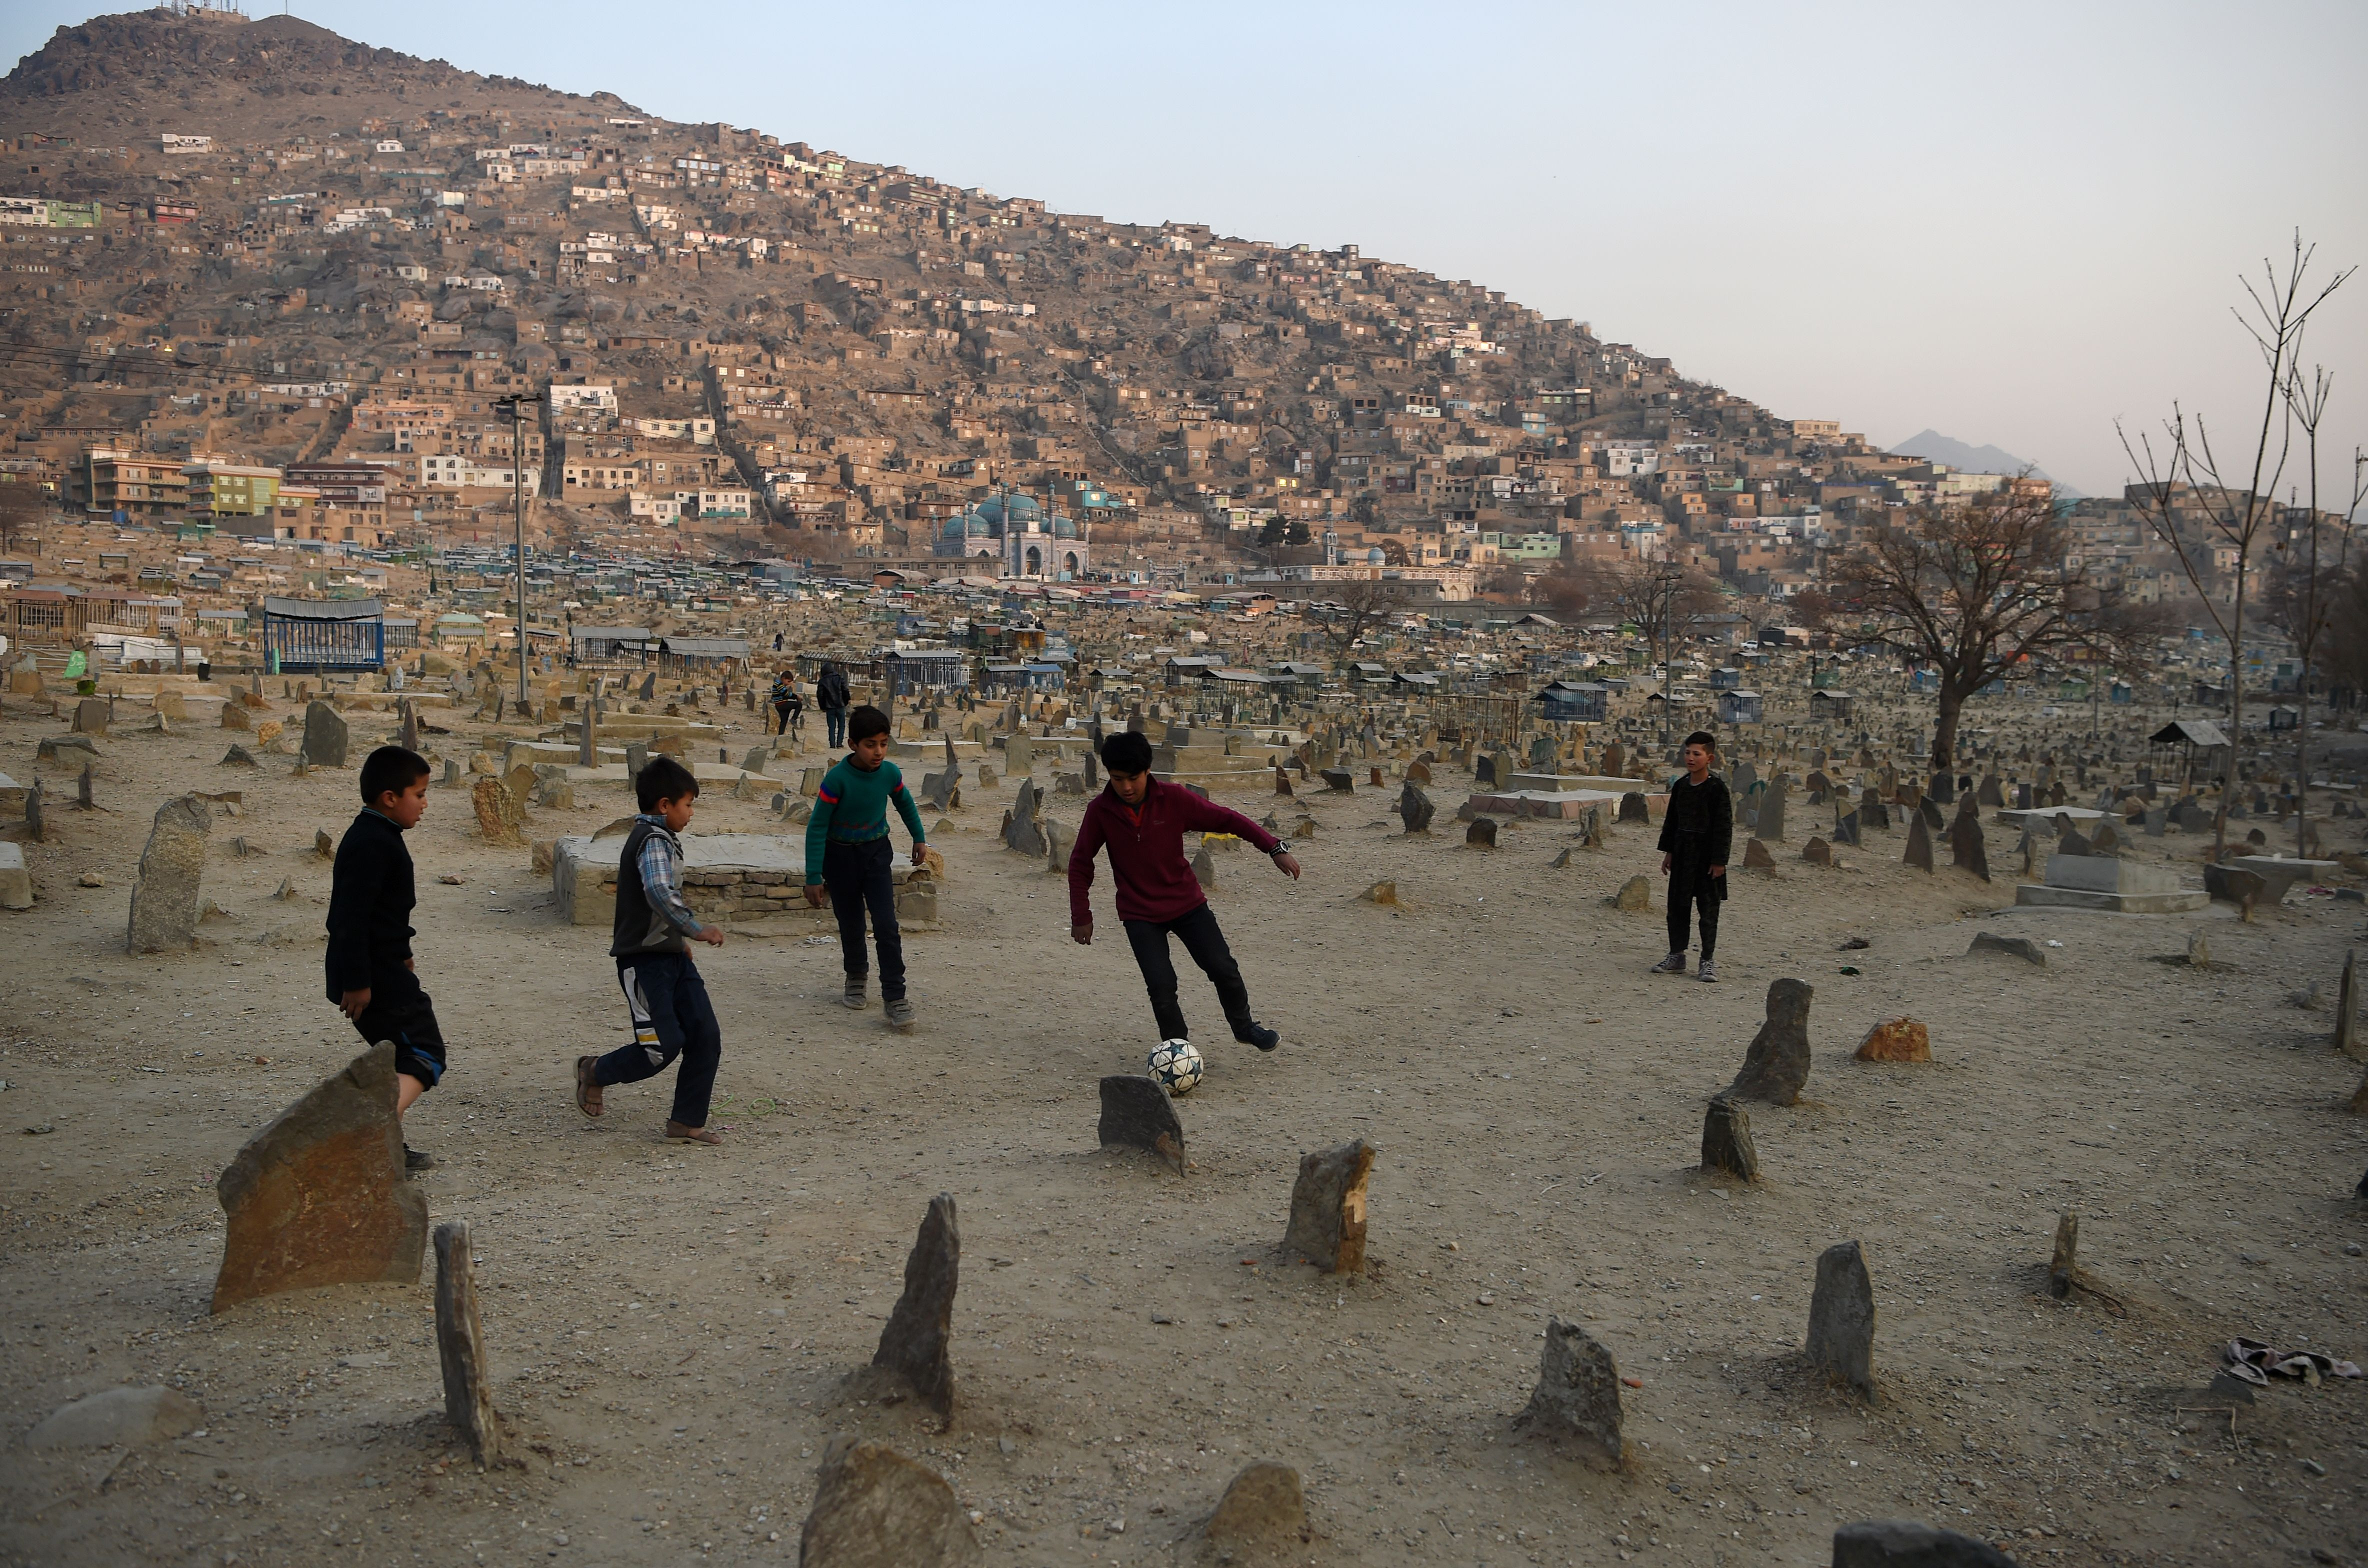 Afghan boys play football at at the Kart-e-Sakhi cemetery in Kabul on December 30, 2018. (Photo by WAKIL KOHSAR / AFP) (Photo credit should read WAKIL KOHSAR/AFP/Getty Images)